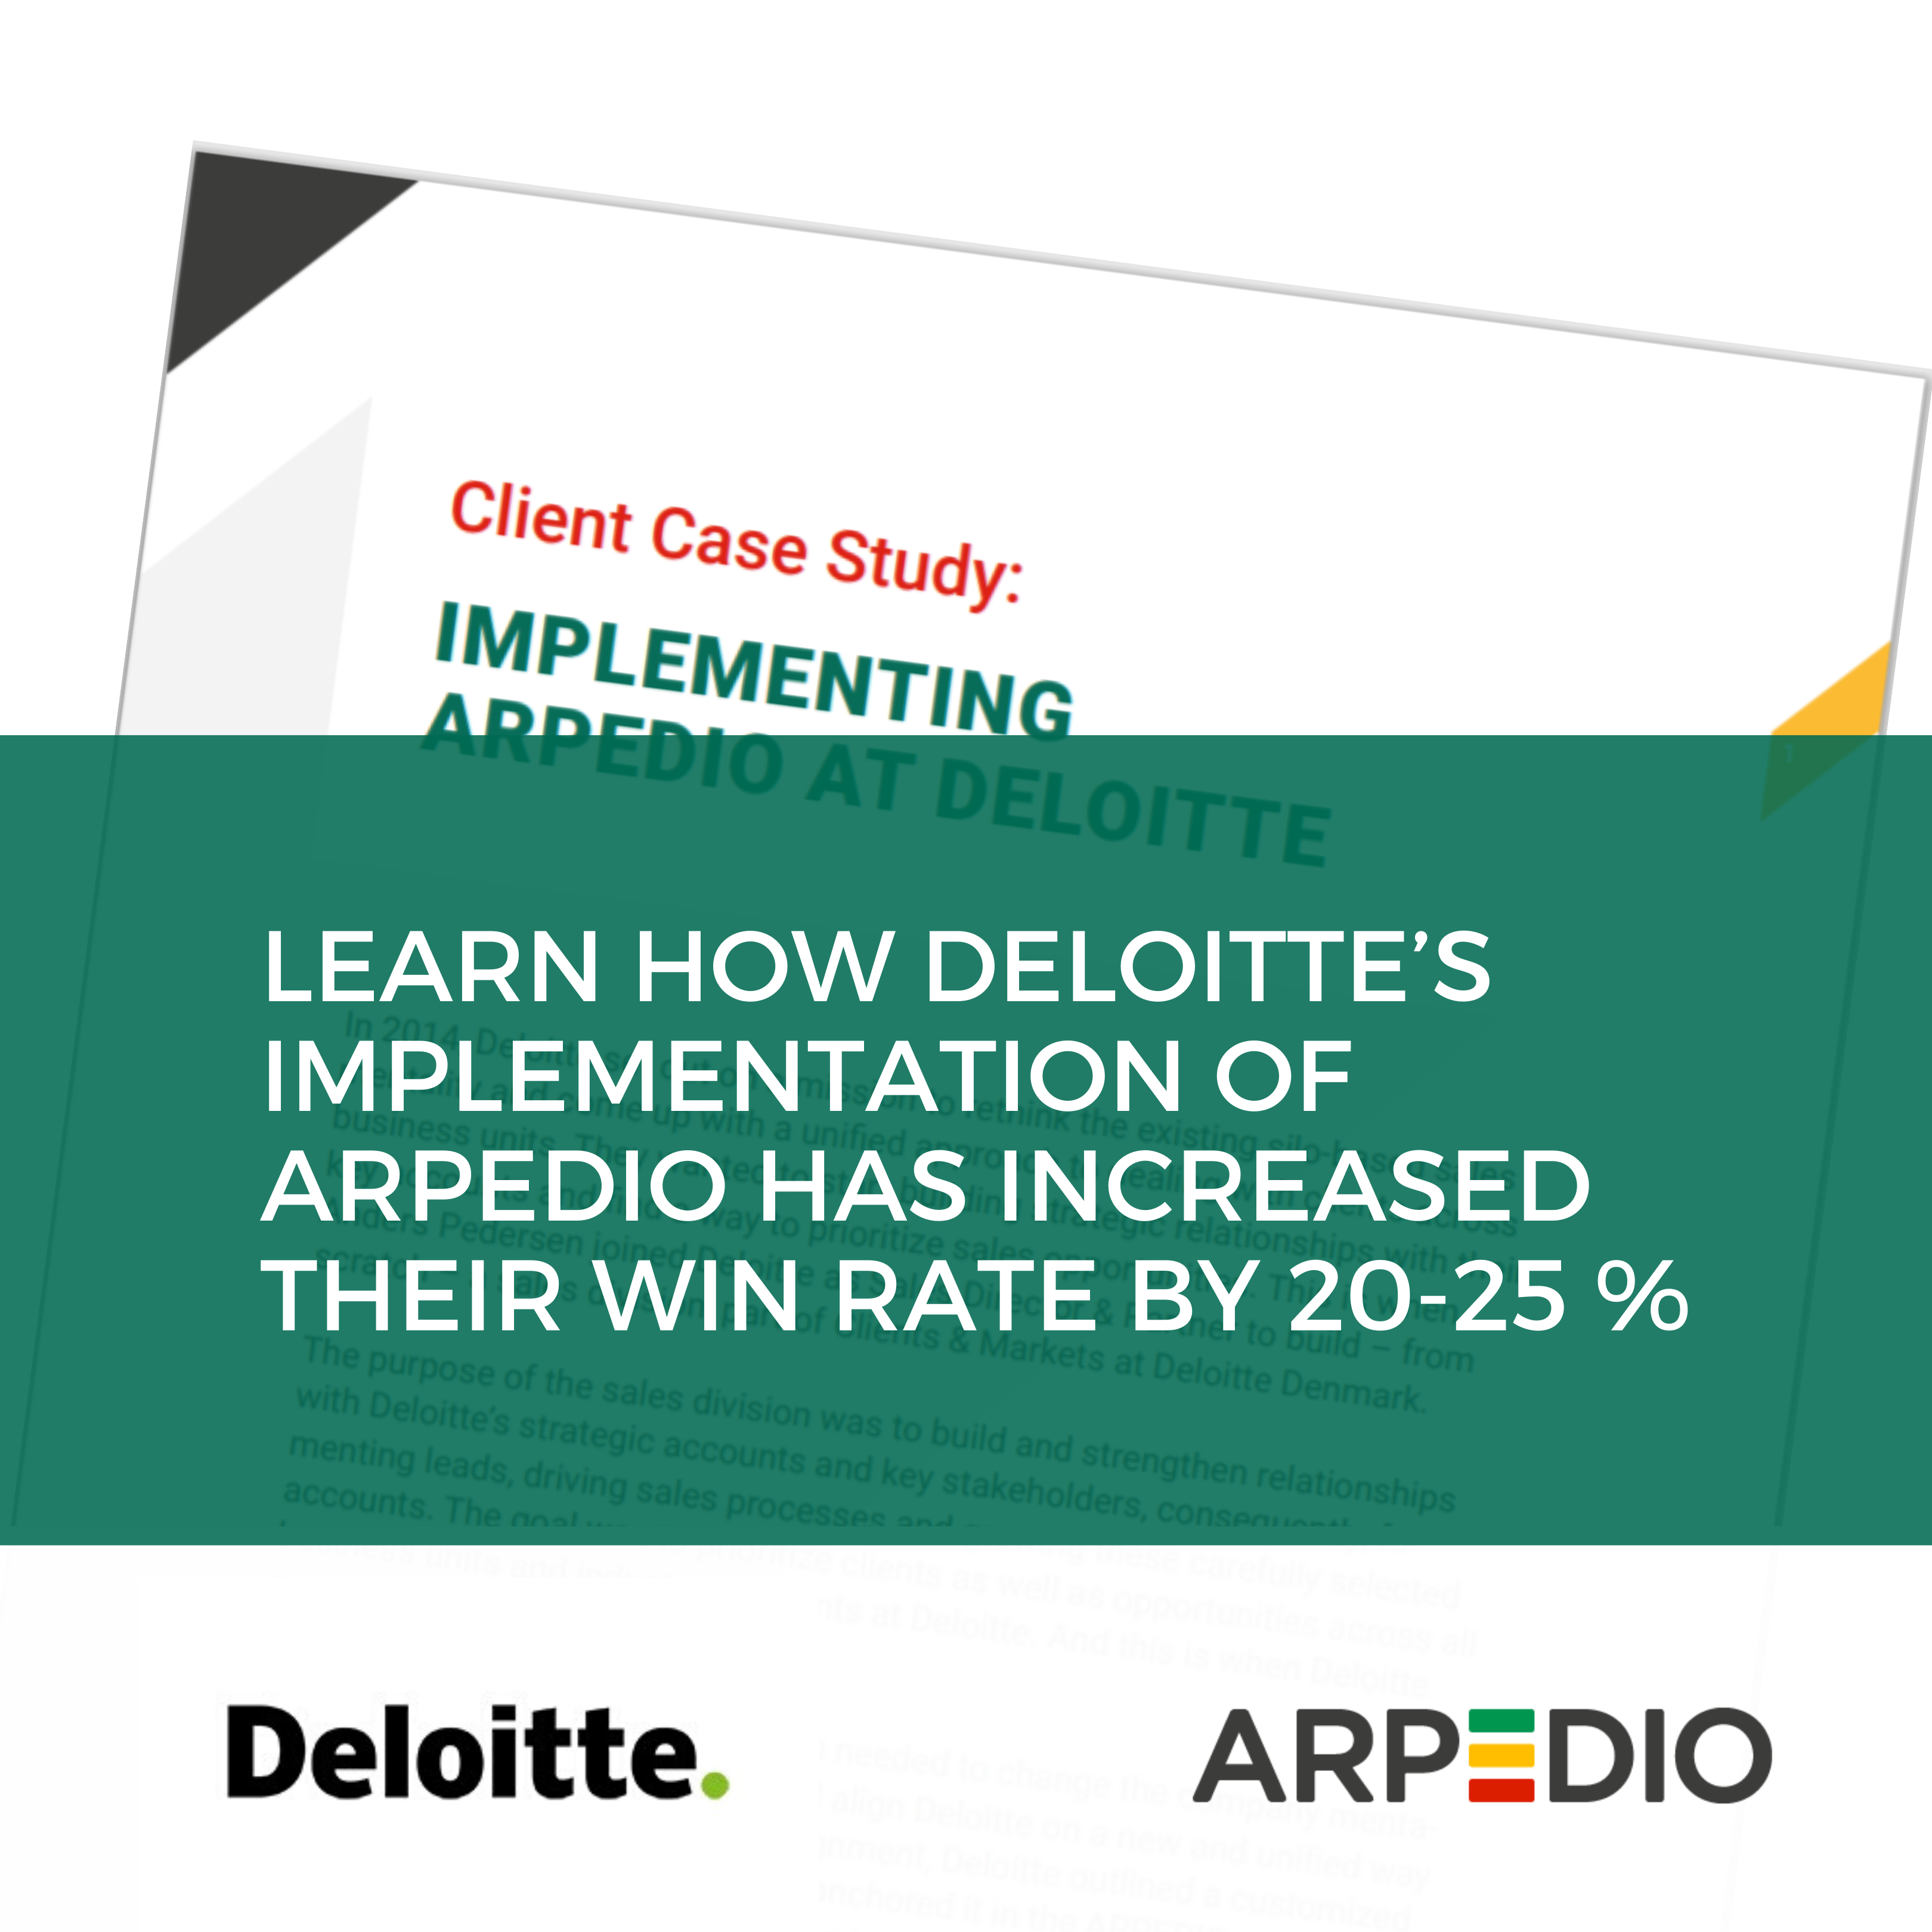 Learn how Deloittes implementation of Arpedio has increased their win rate by 20-25%